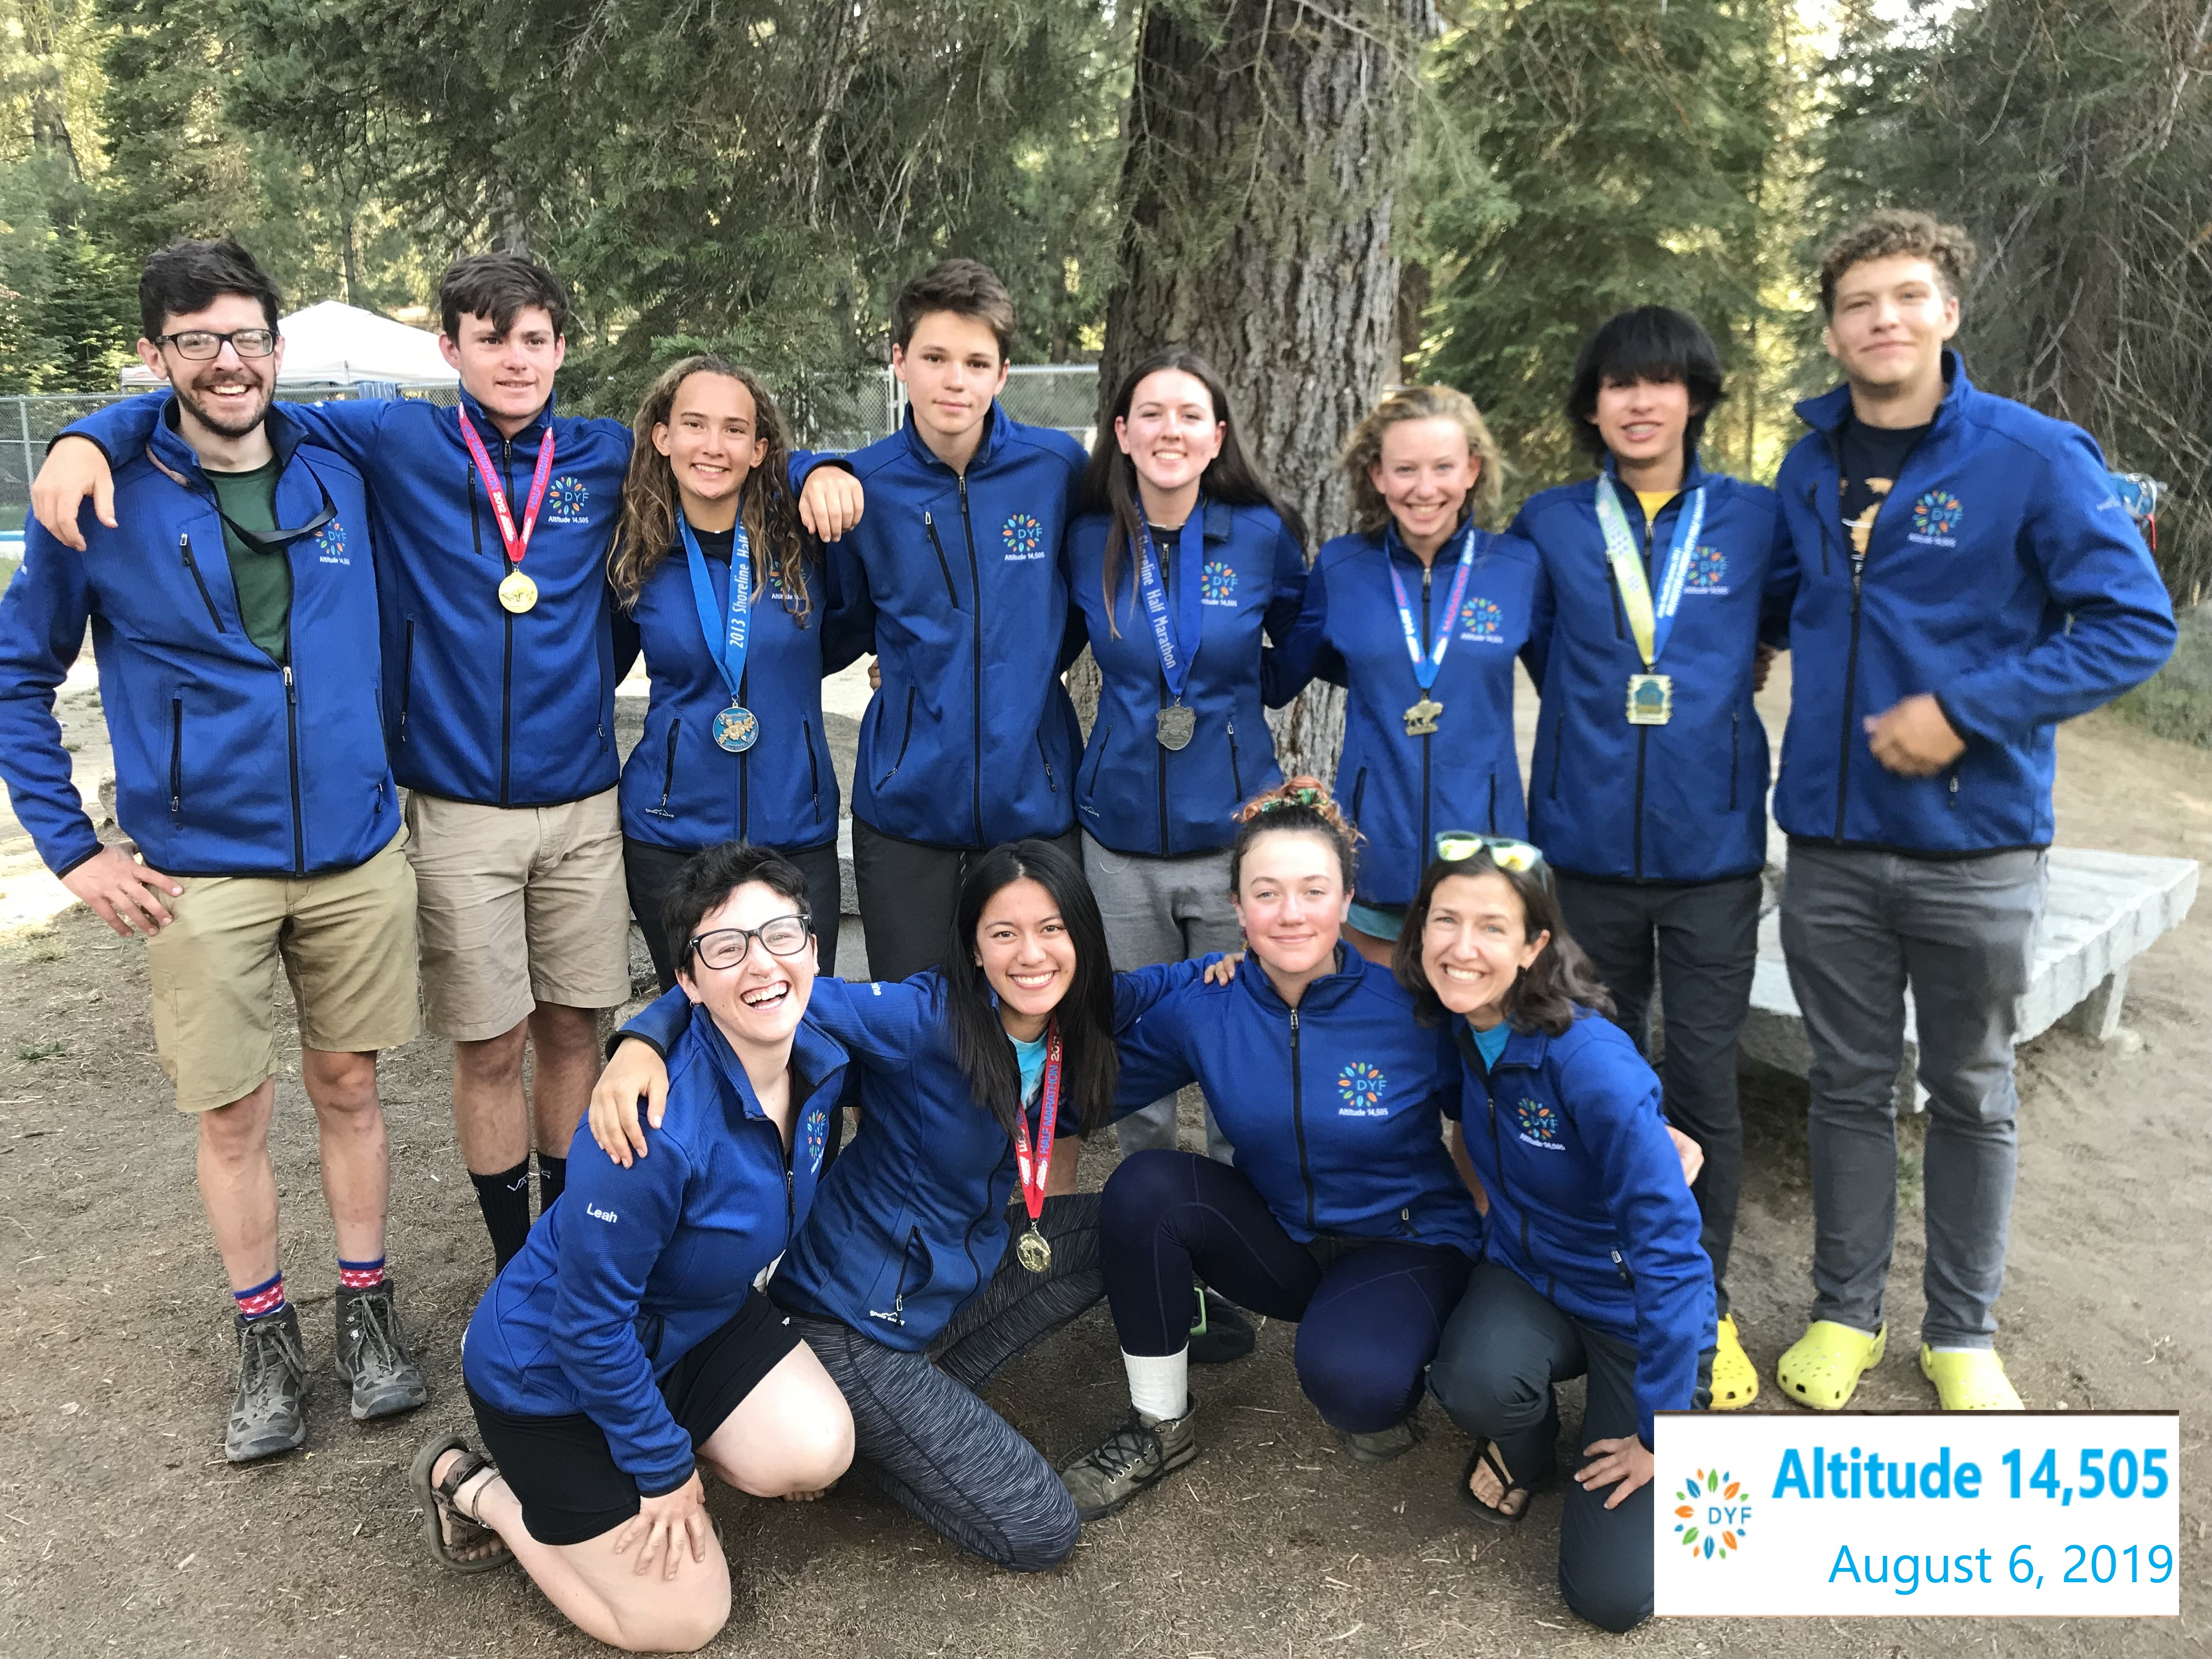 Teens Reach New Heights with Altitude 14,505